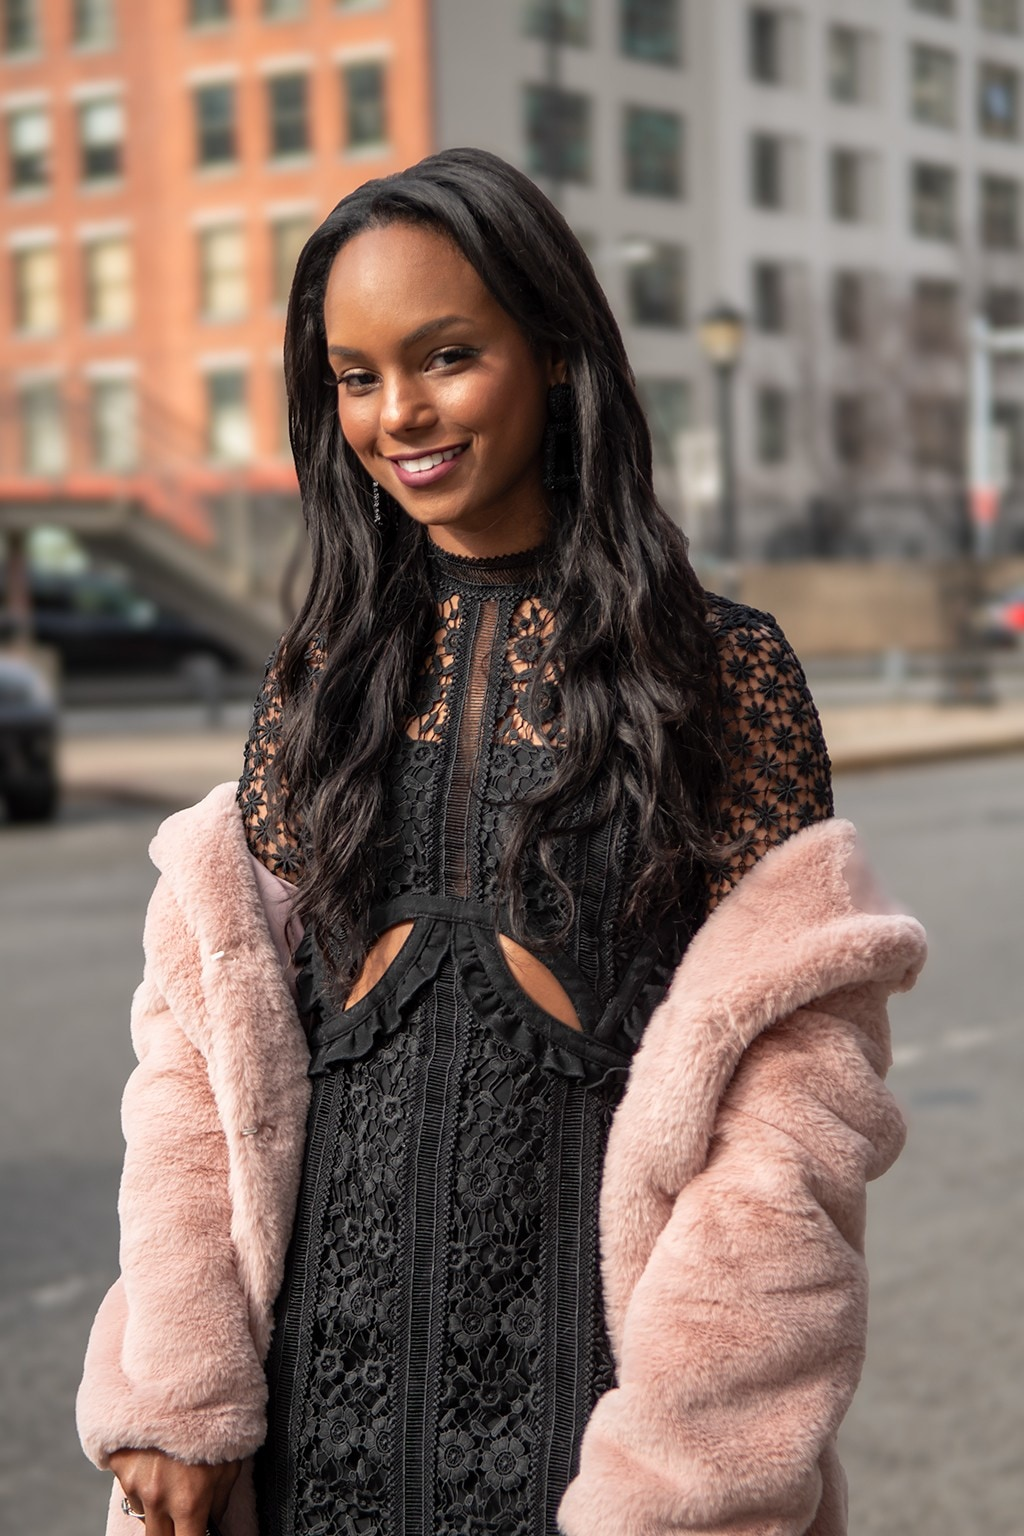 Long hair ideas: Shot of woman with long relaxed natural hair with glam curls at the ends